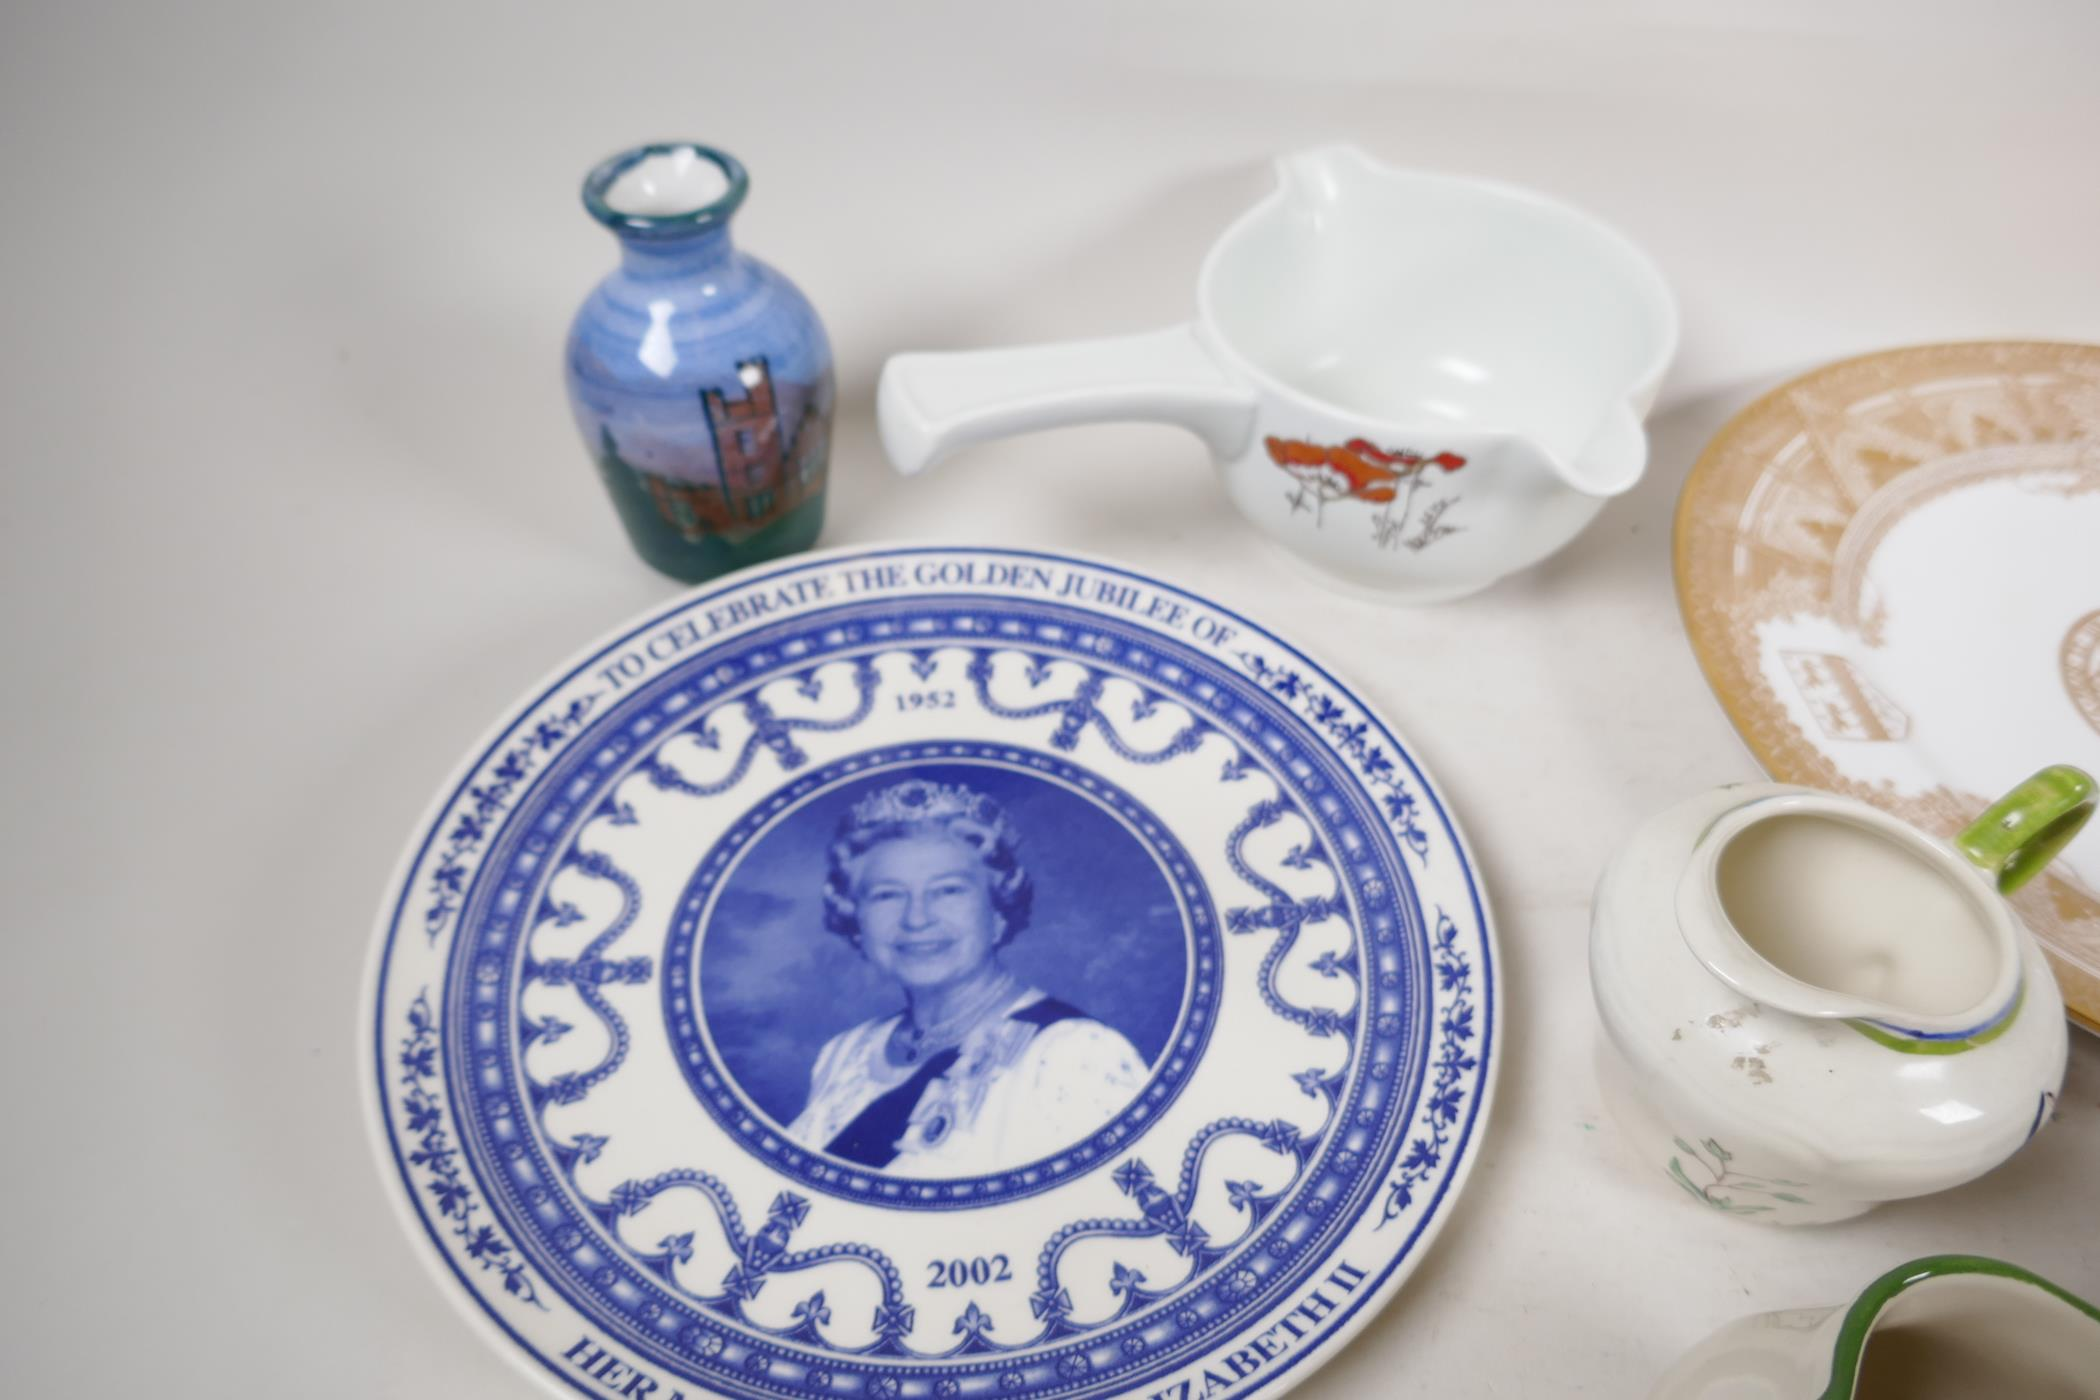 A quantity of decorative pottery and porcelain to include Royal Doulton, Wedgwood, Spode etc - Image 5 of 6